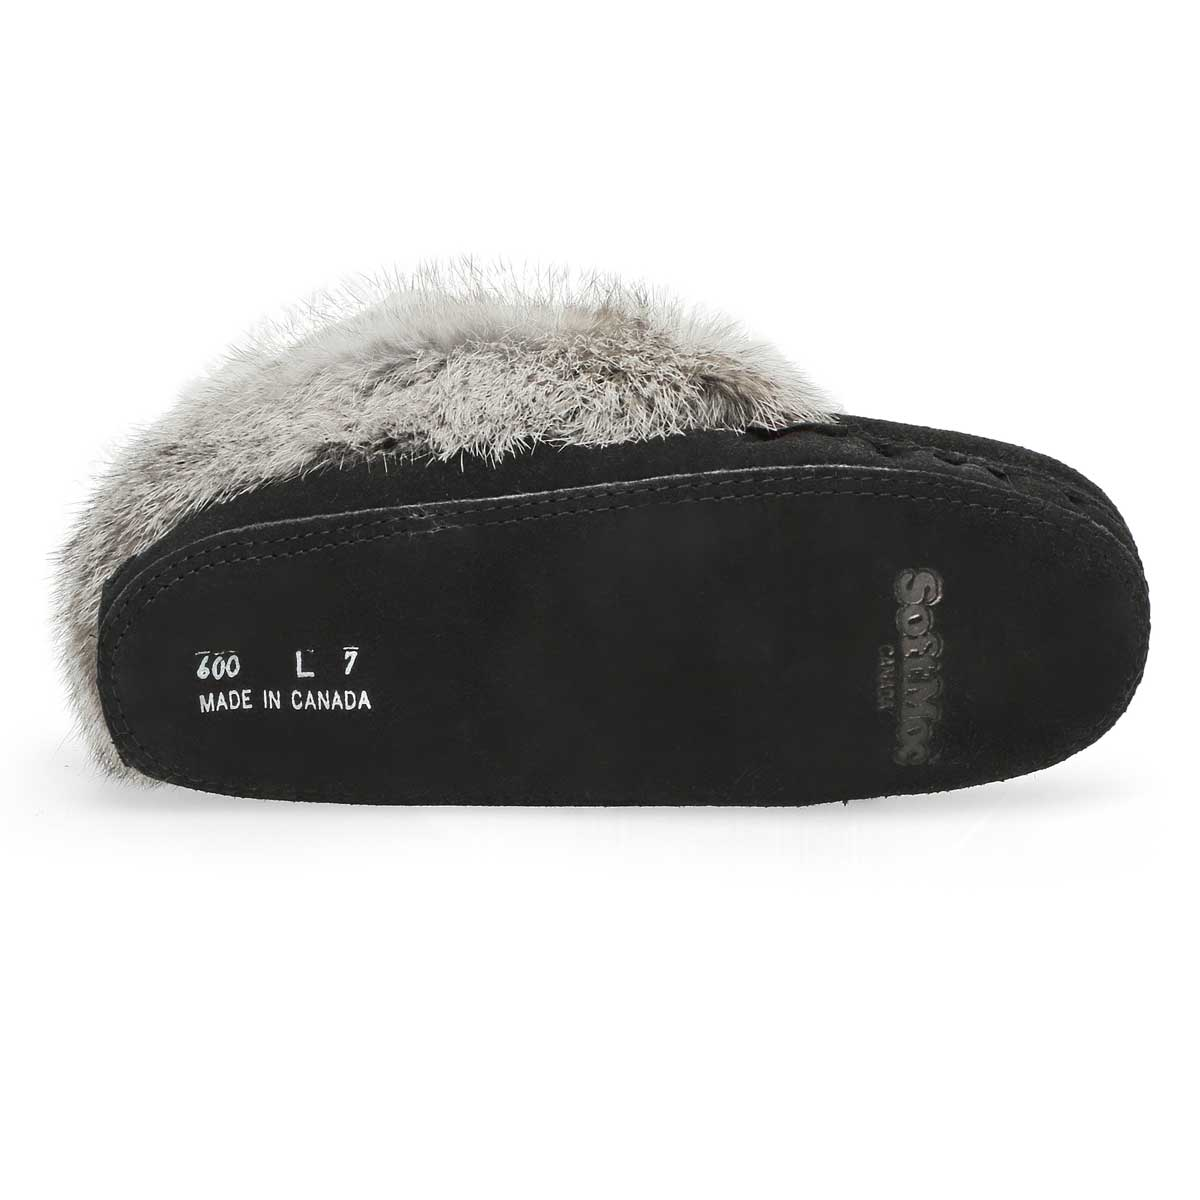 Lds black/grey rabbit fur moccasin